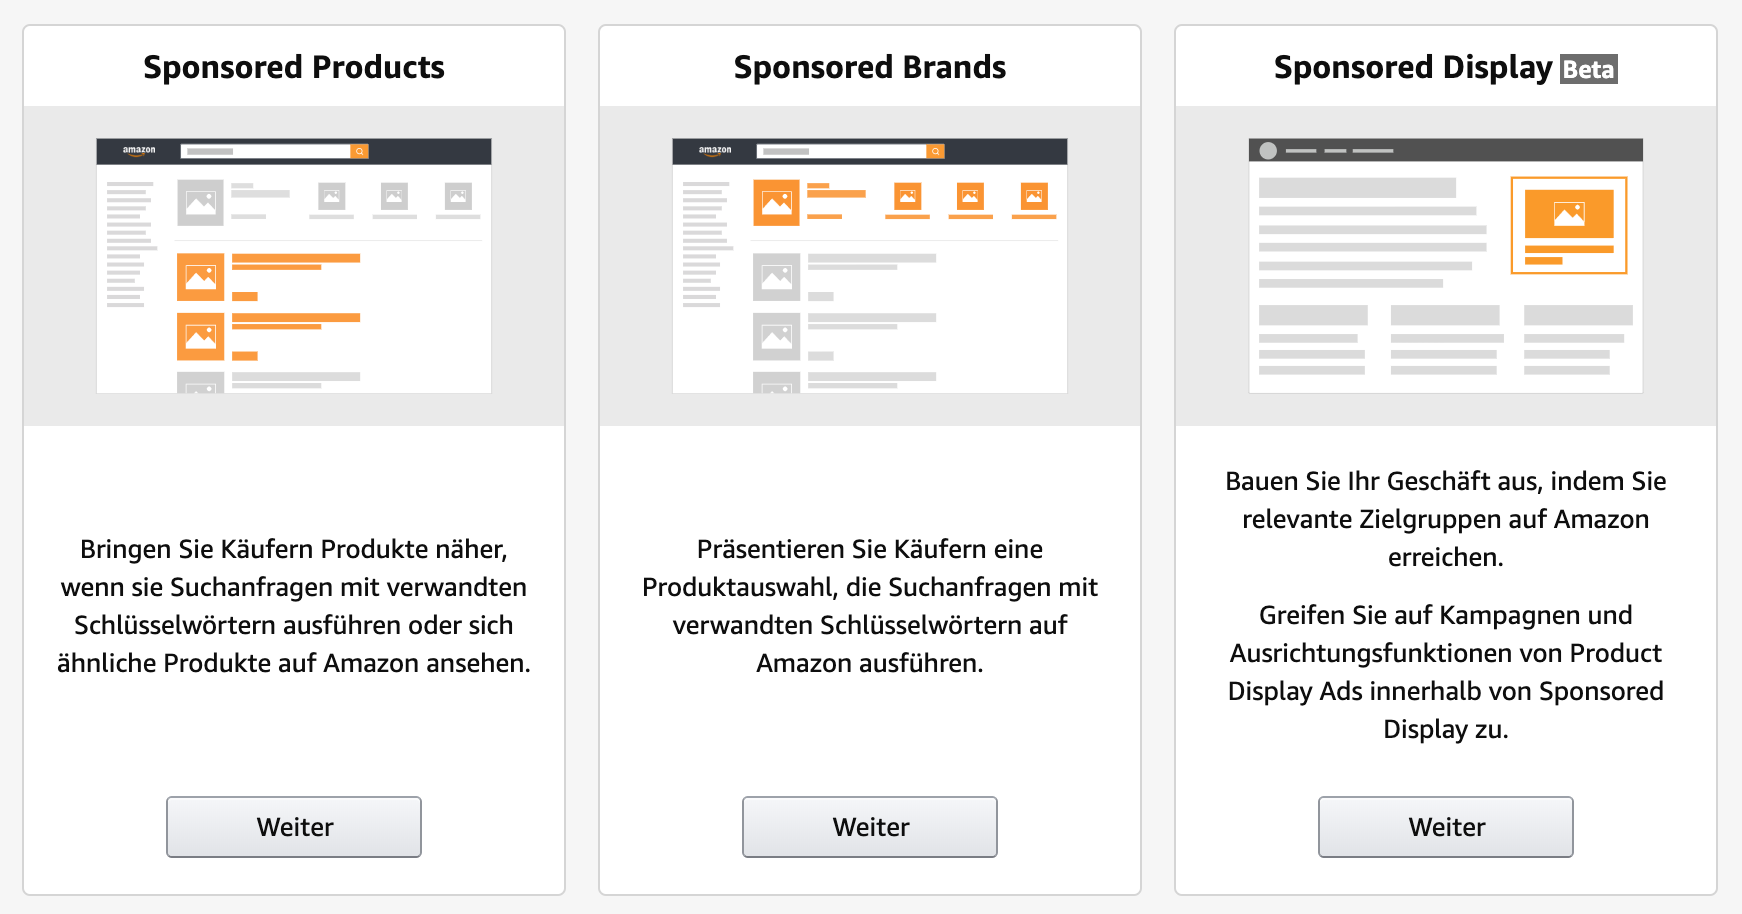 Amazon PPC Ad Types_Sponsored Products_Sponsored Brands_Sponsored Display 01-2020